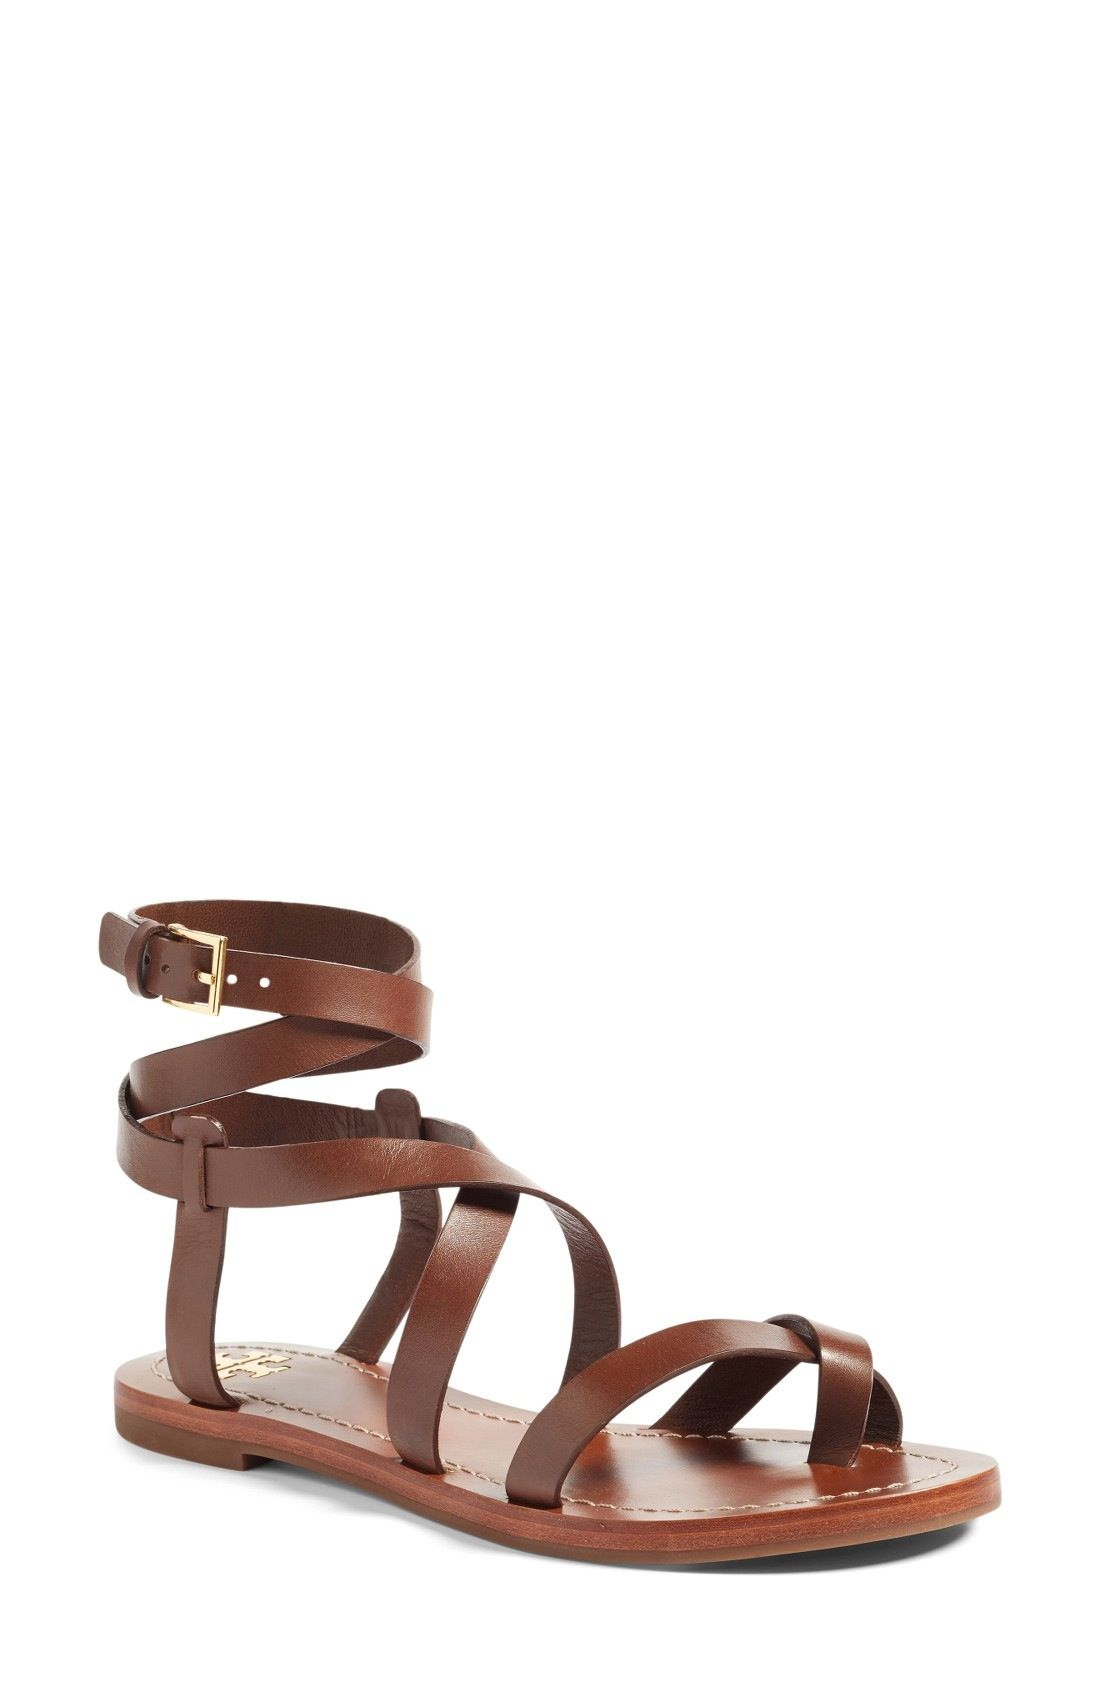 504b409b78a Tory Burch  Patos  Gladiator Sandal (Women) available at  Nordstrom ...